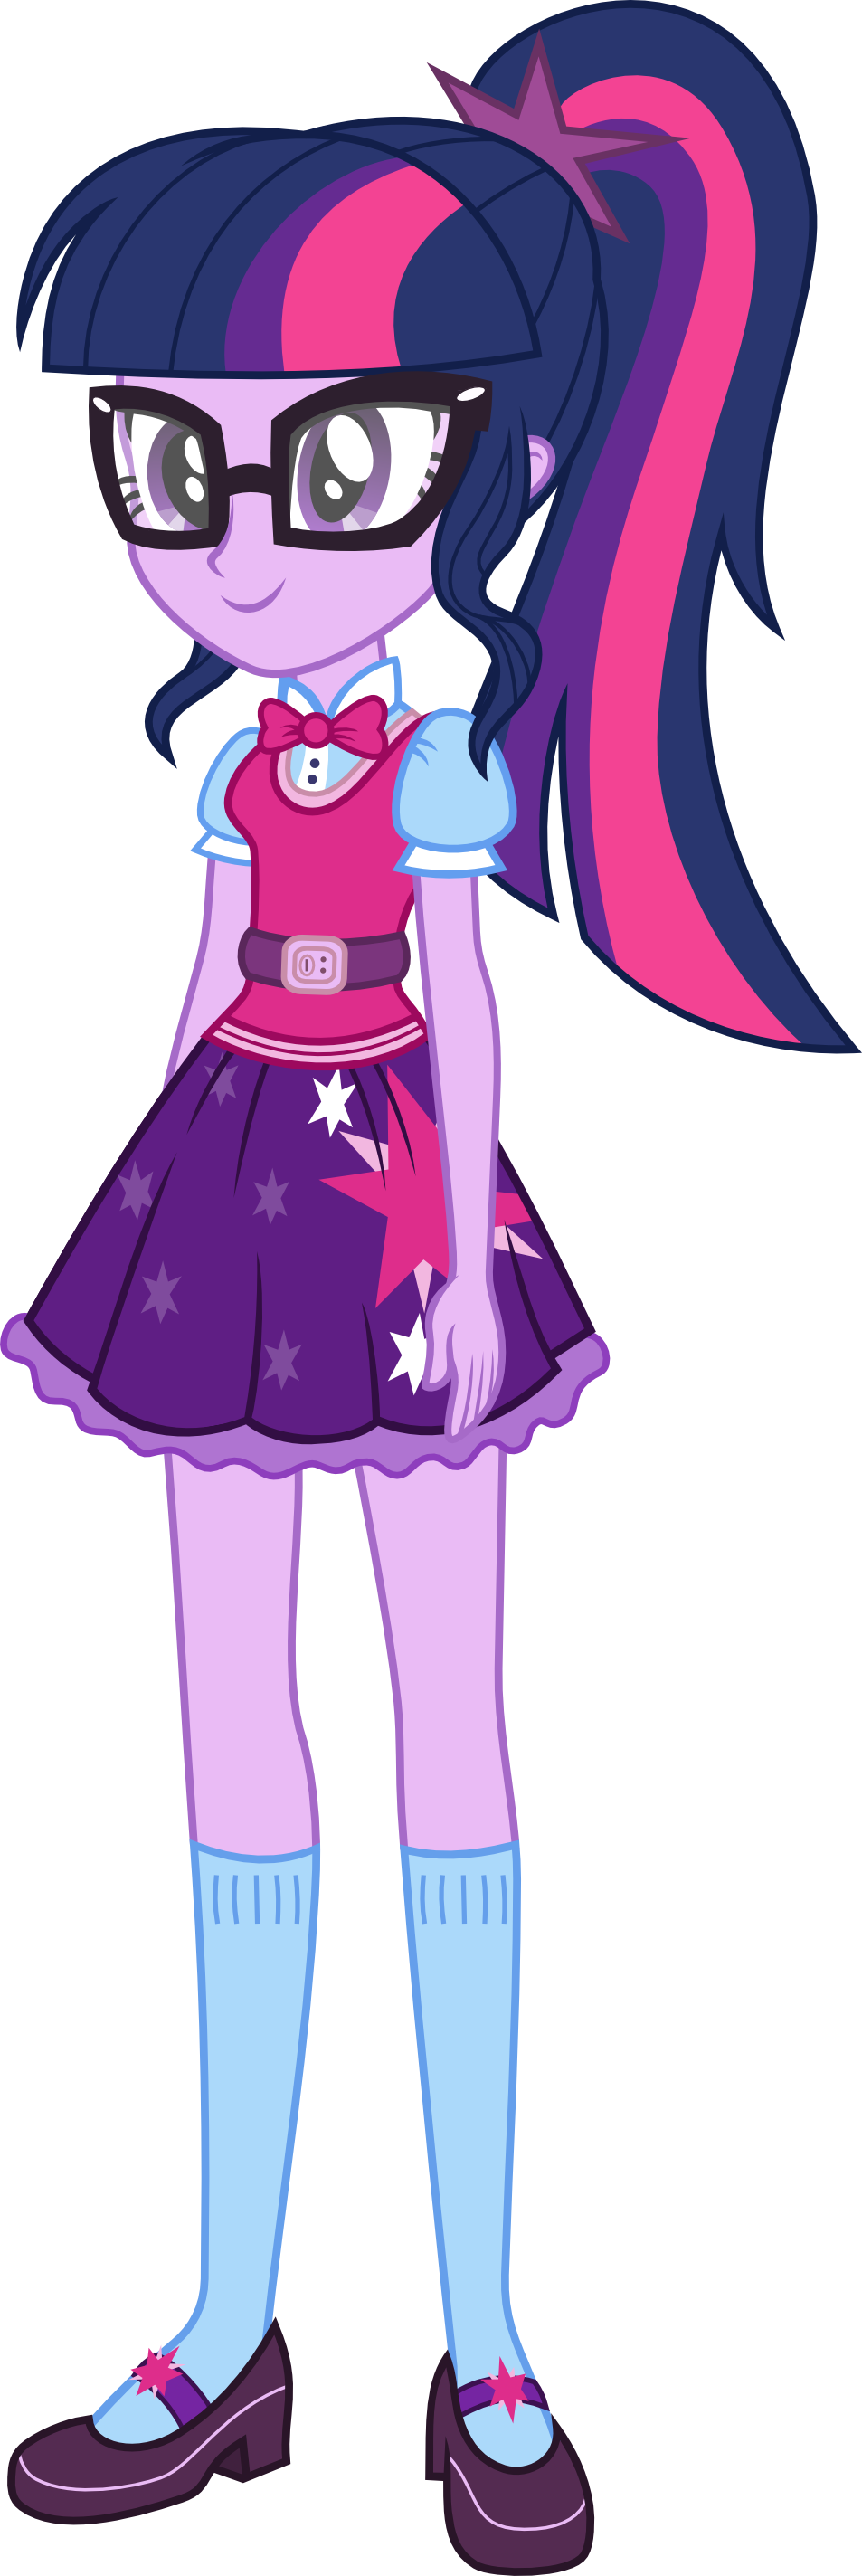 twilight sparkle equestria girls death battle fanon. Black Bedroom Furniture Sets. Home Design Ideas